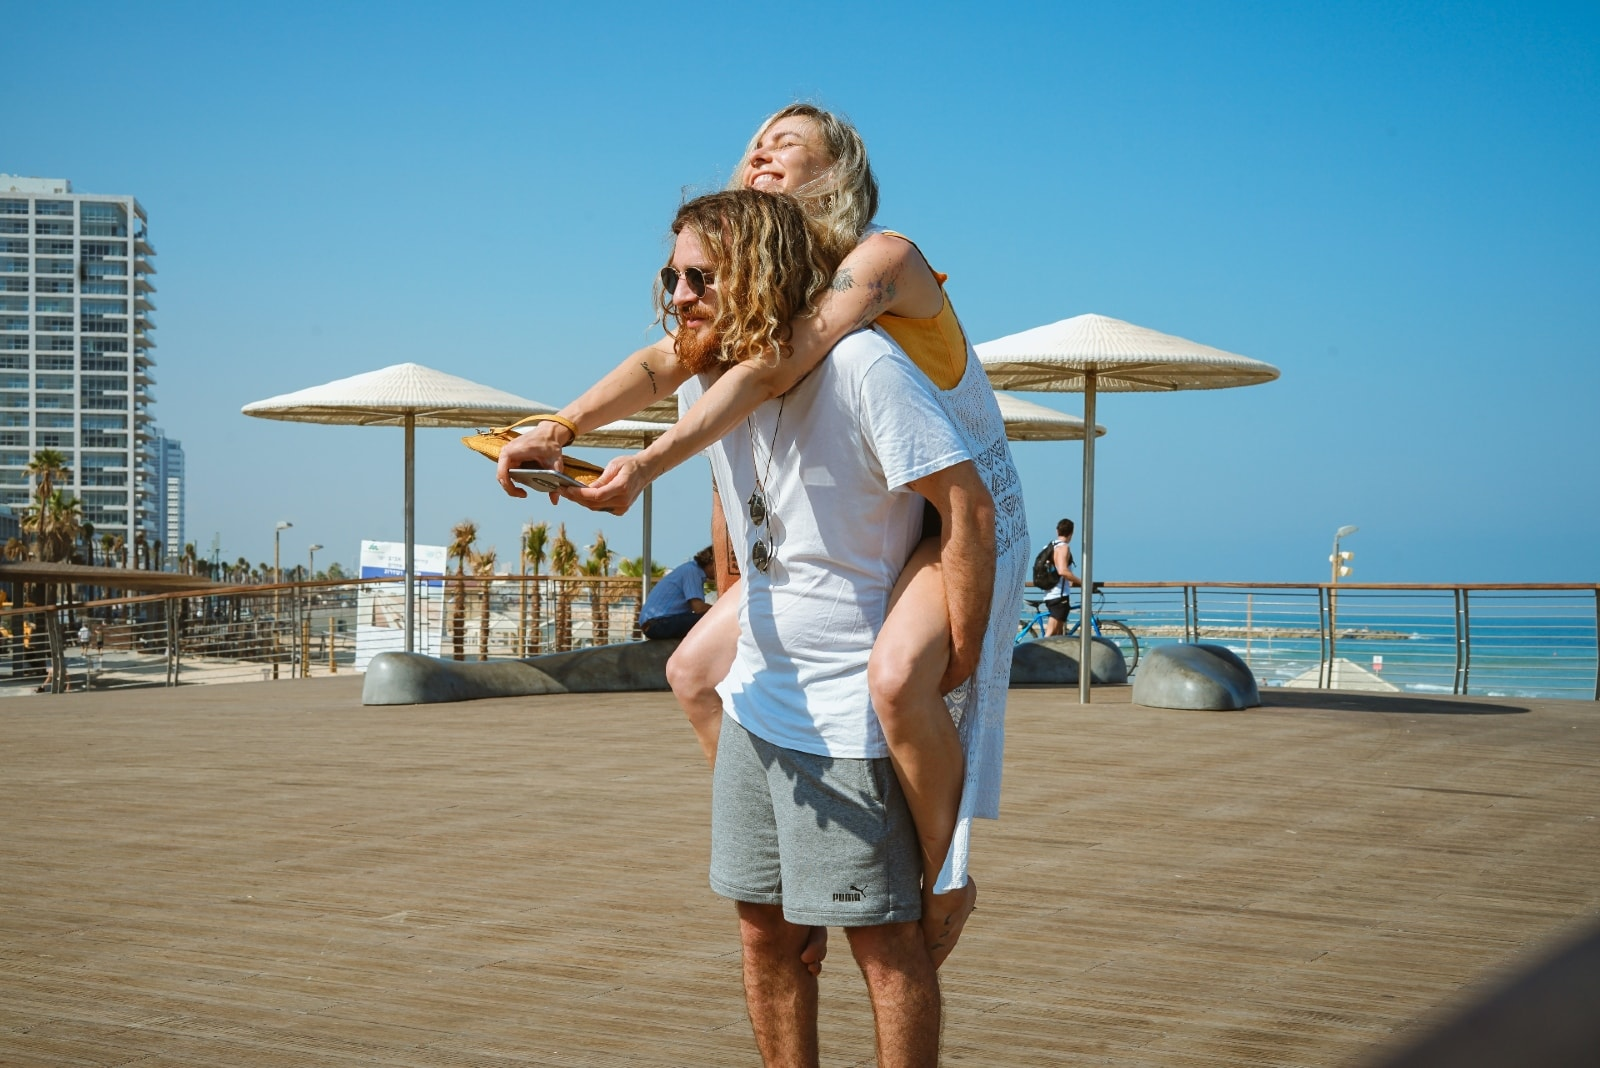 man in white t-shirt carrying woman outdoor